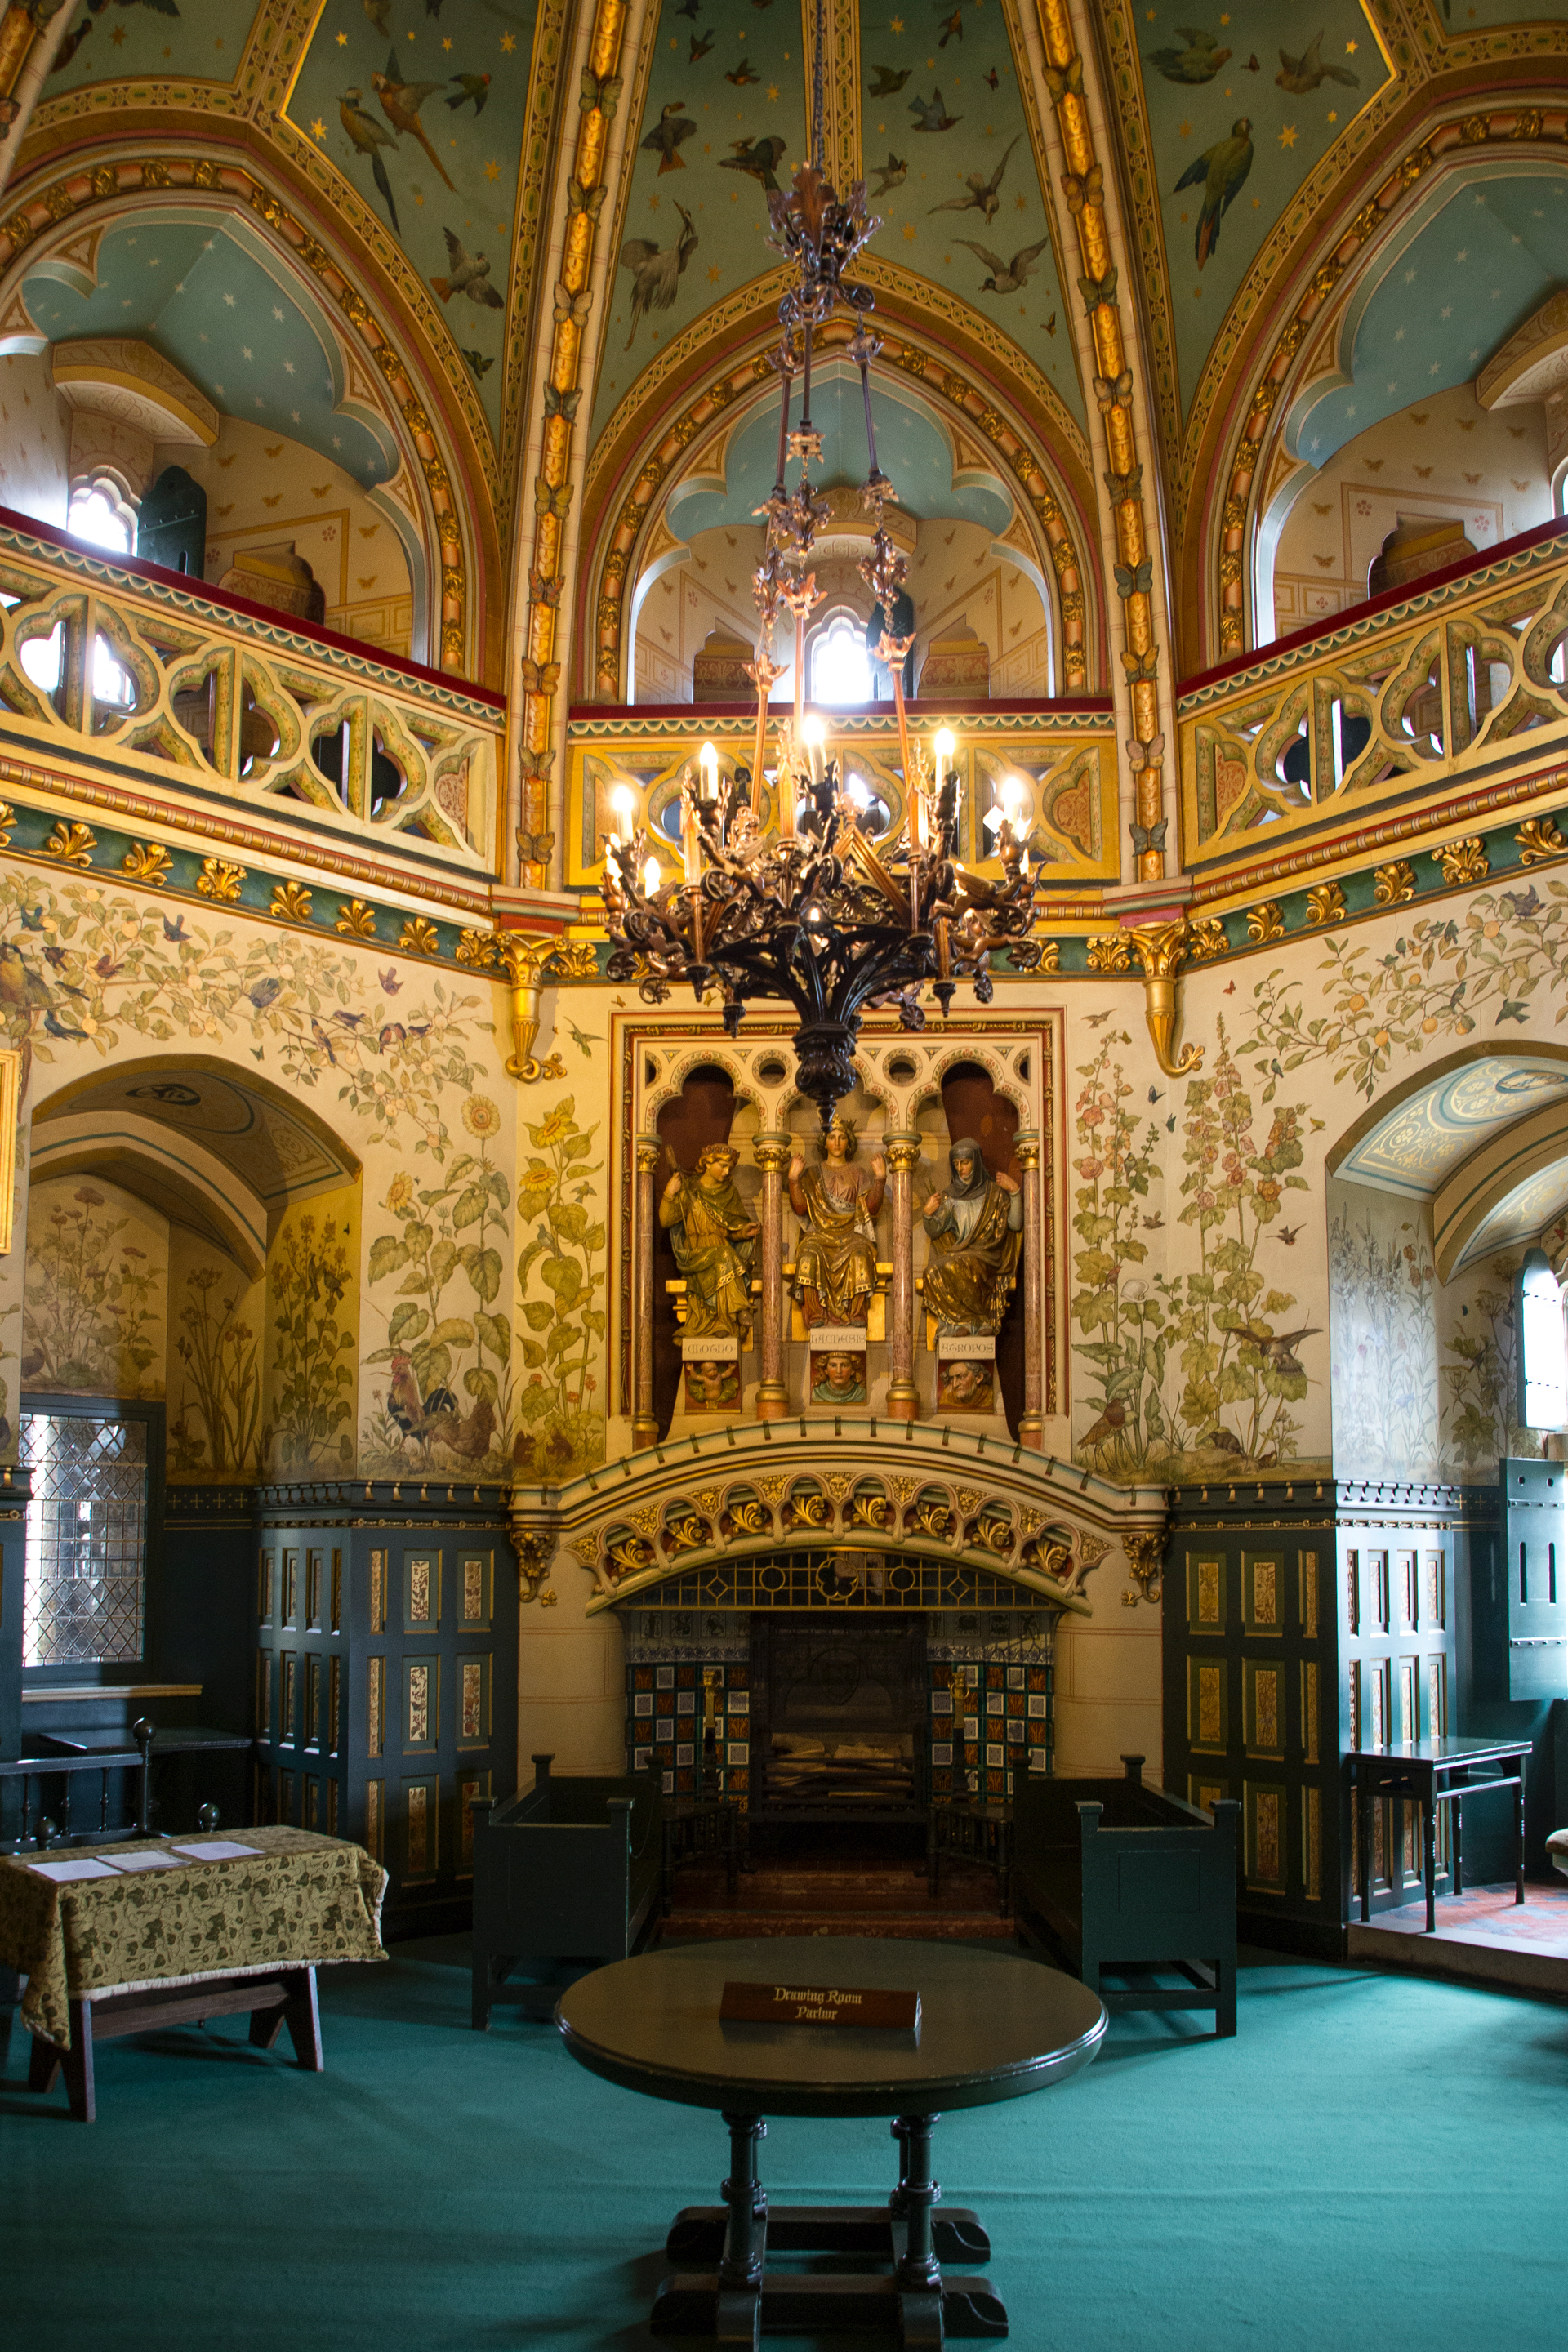 The lavish, formal octagonal Drawing Room occupies the first and second floors of the Keep. The ceiling is supported by vaulted stone ribs.